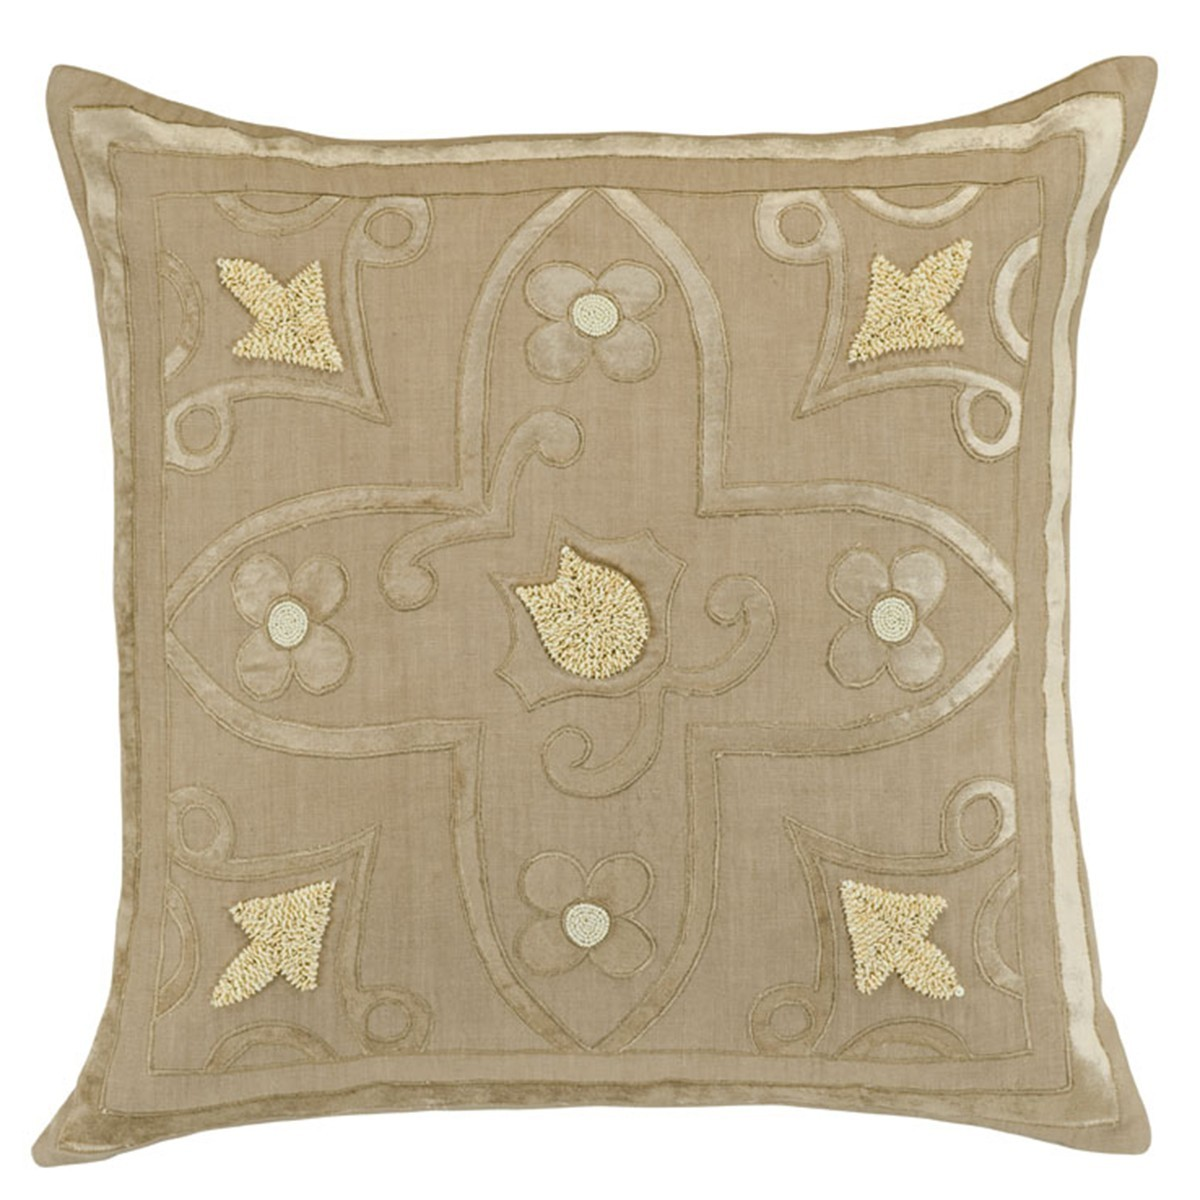 Decorative Pillow With Pearls : Discontinued Lili Alessandra Accents with Pearls Decorative Pillows